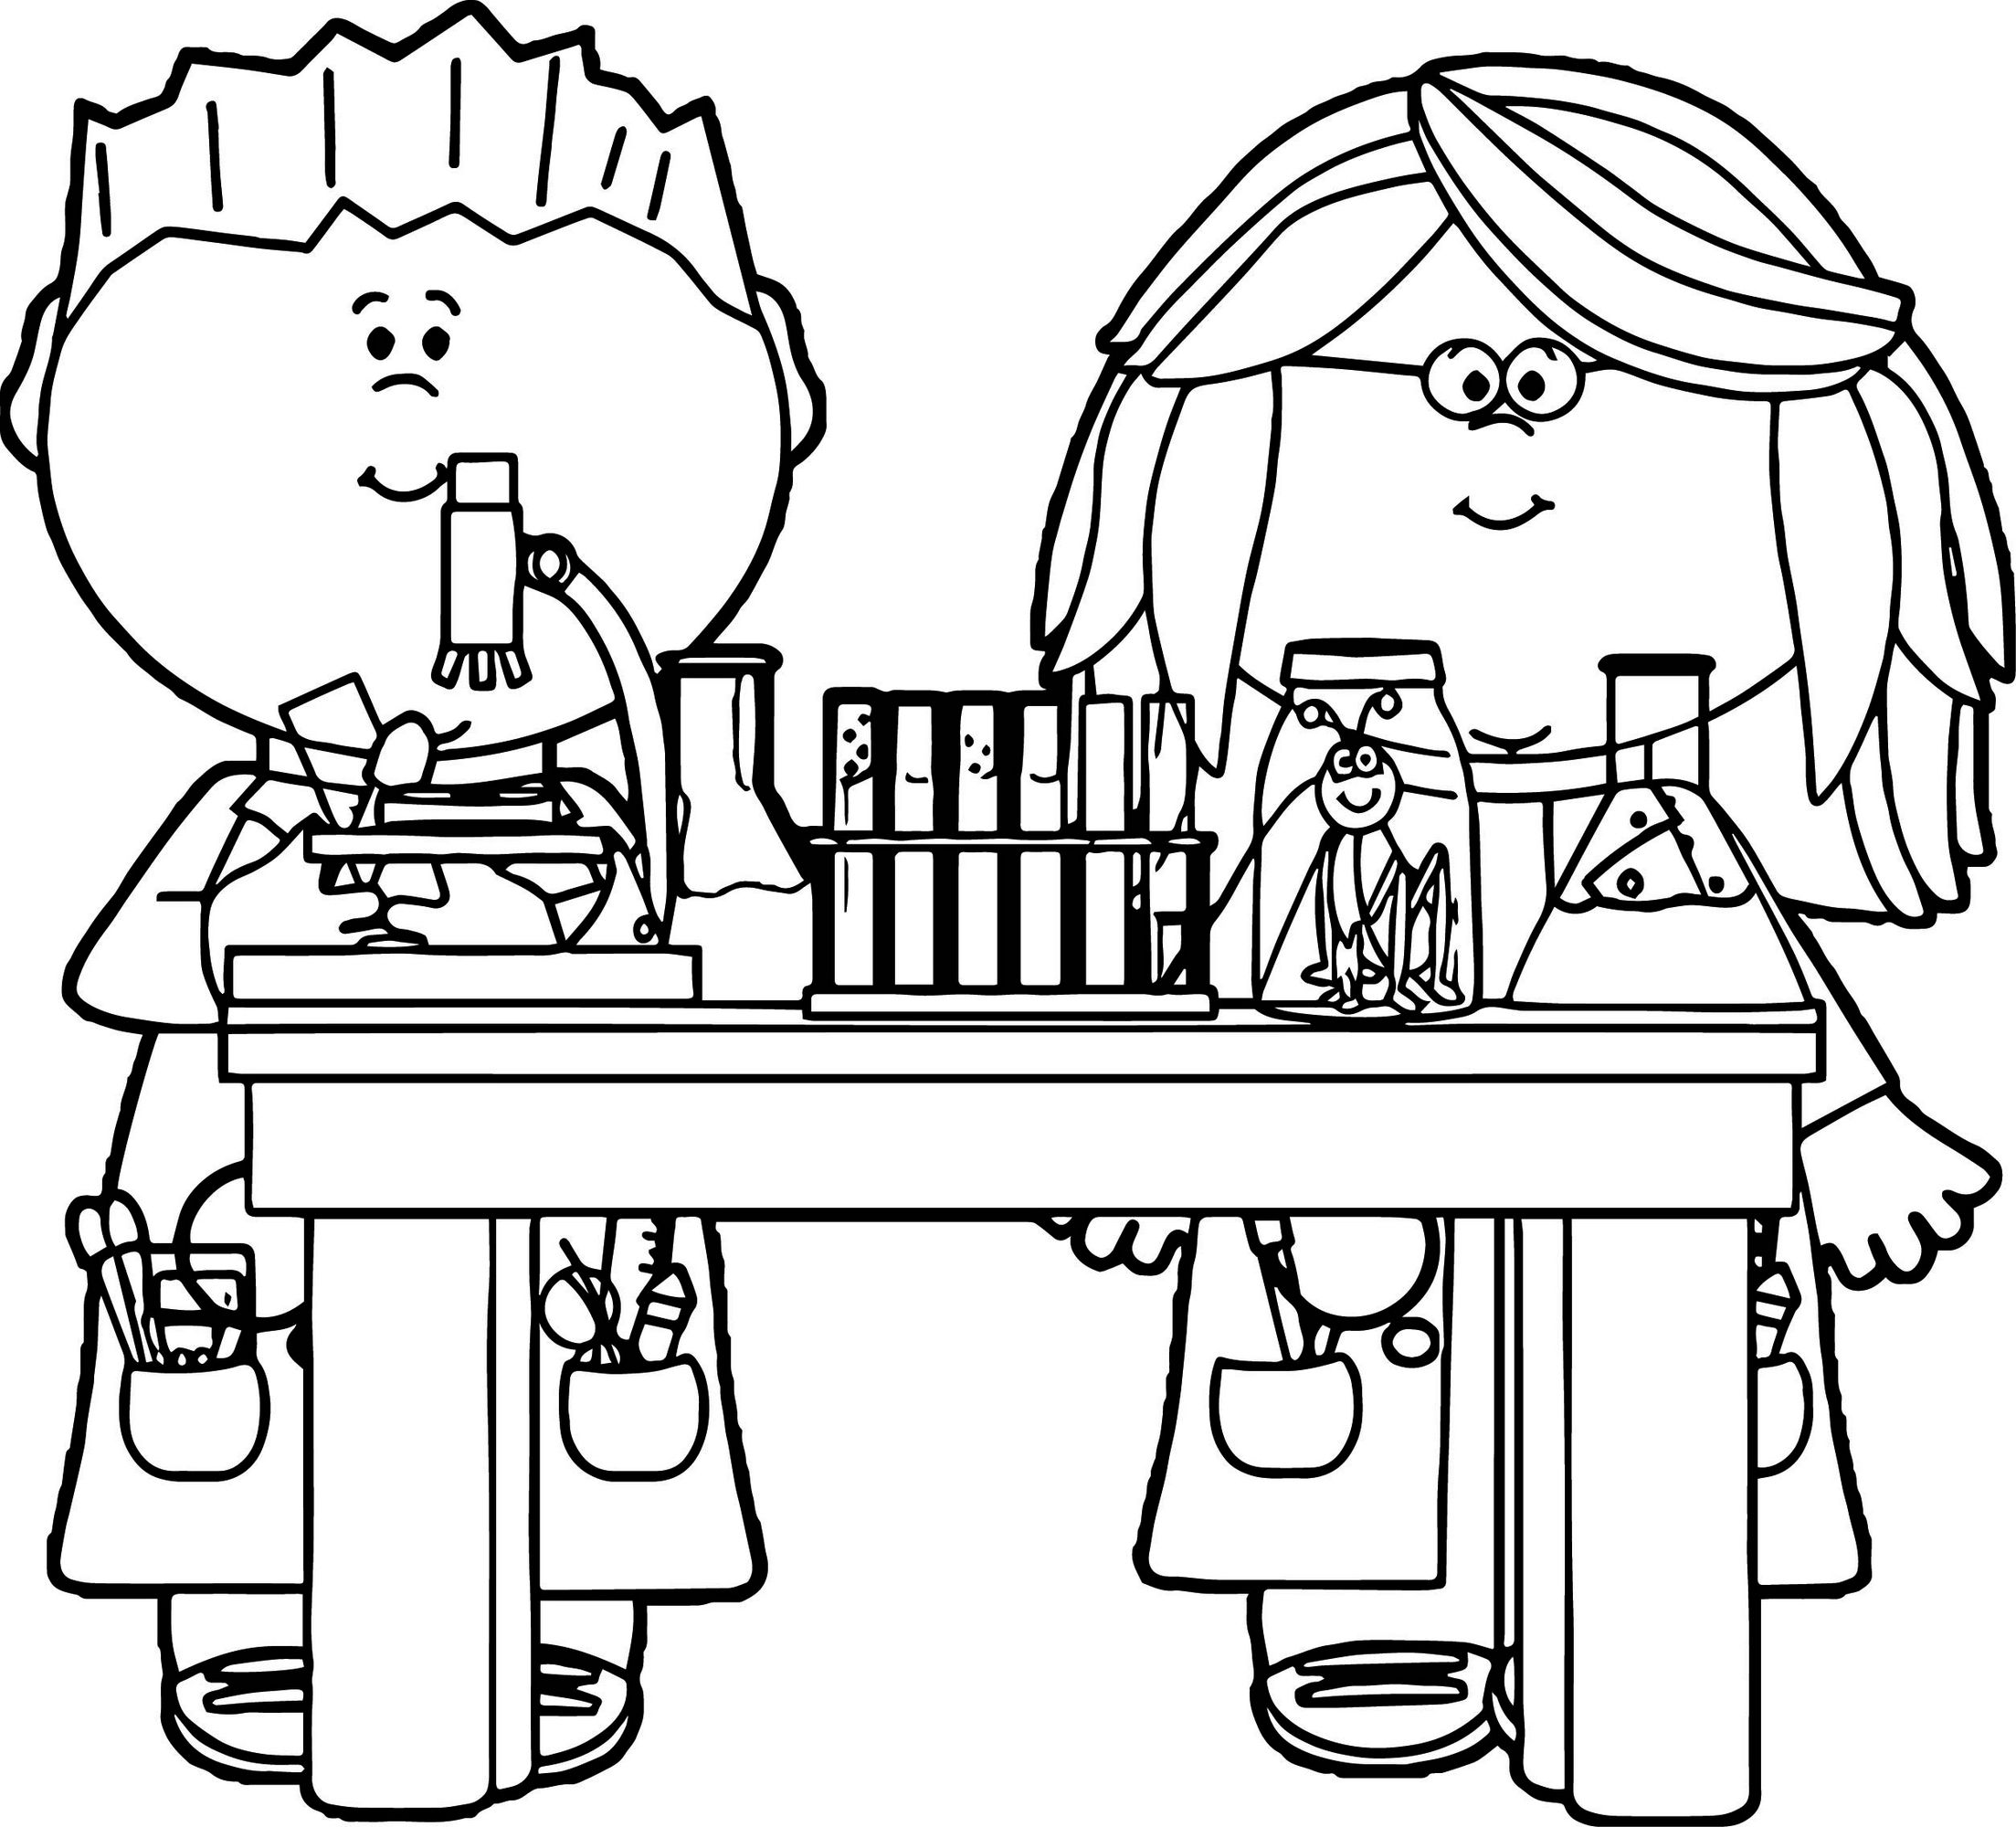 Kids In Science Class Coloring Page Printable